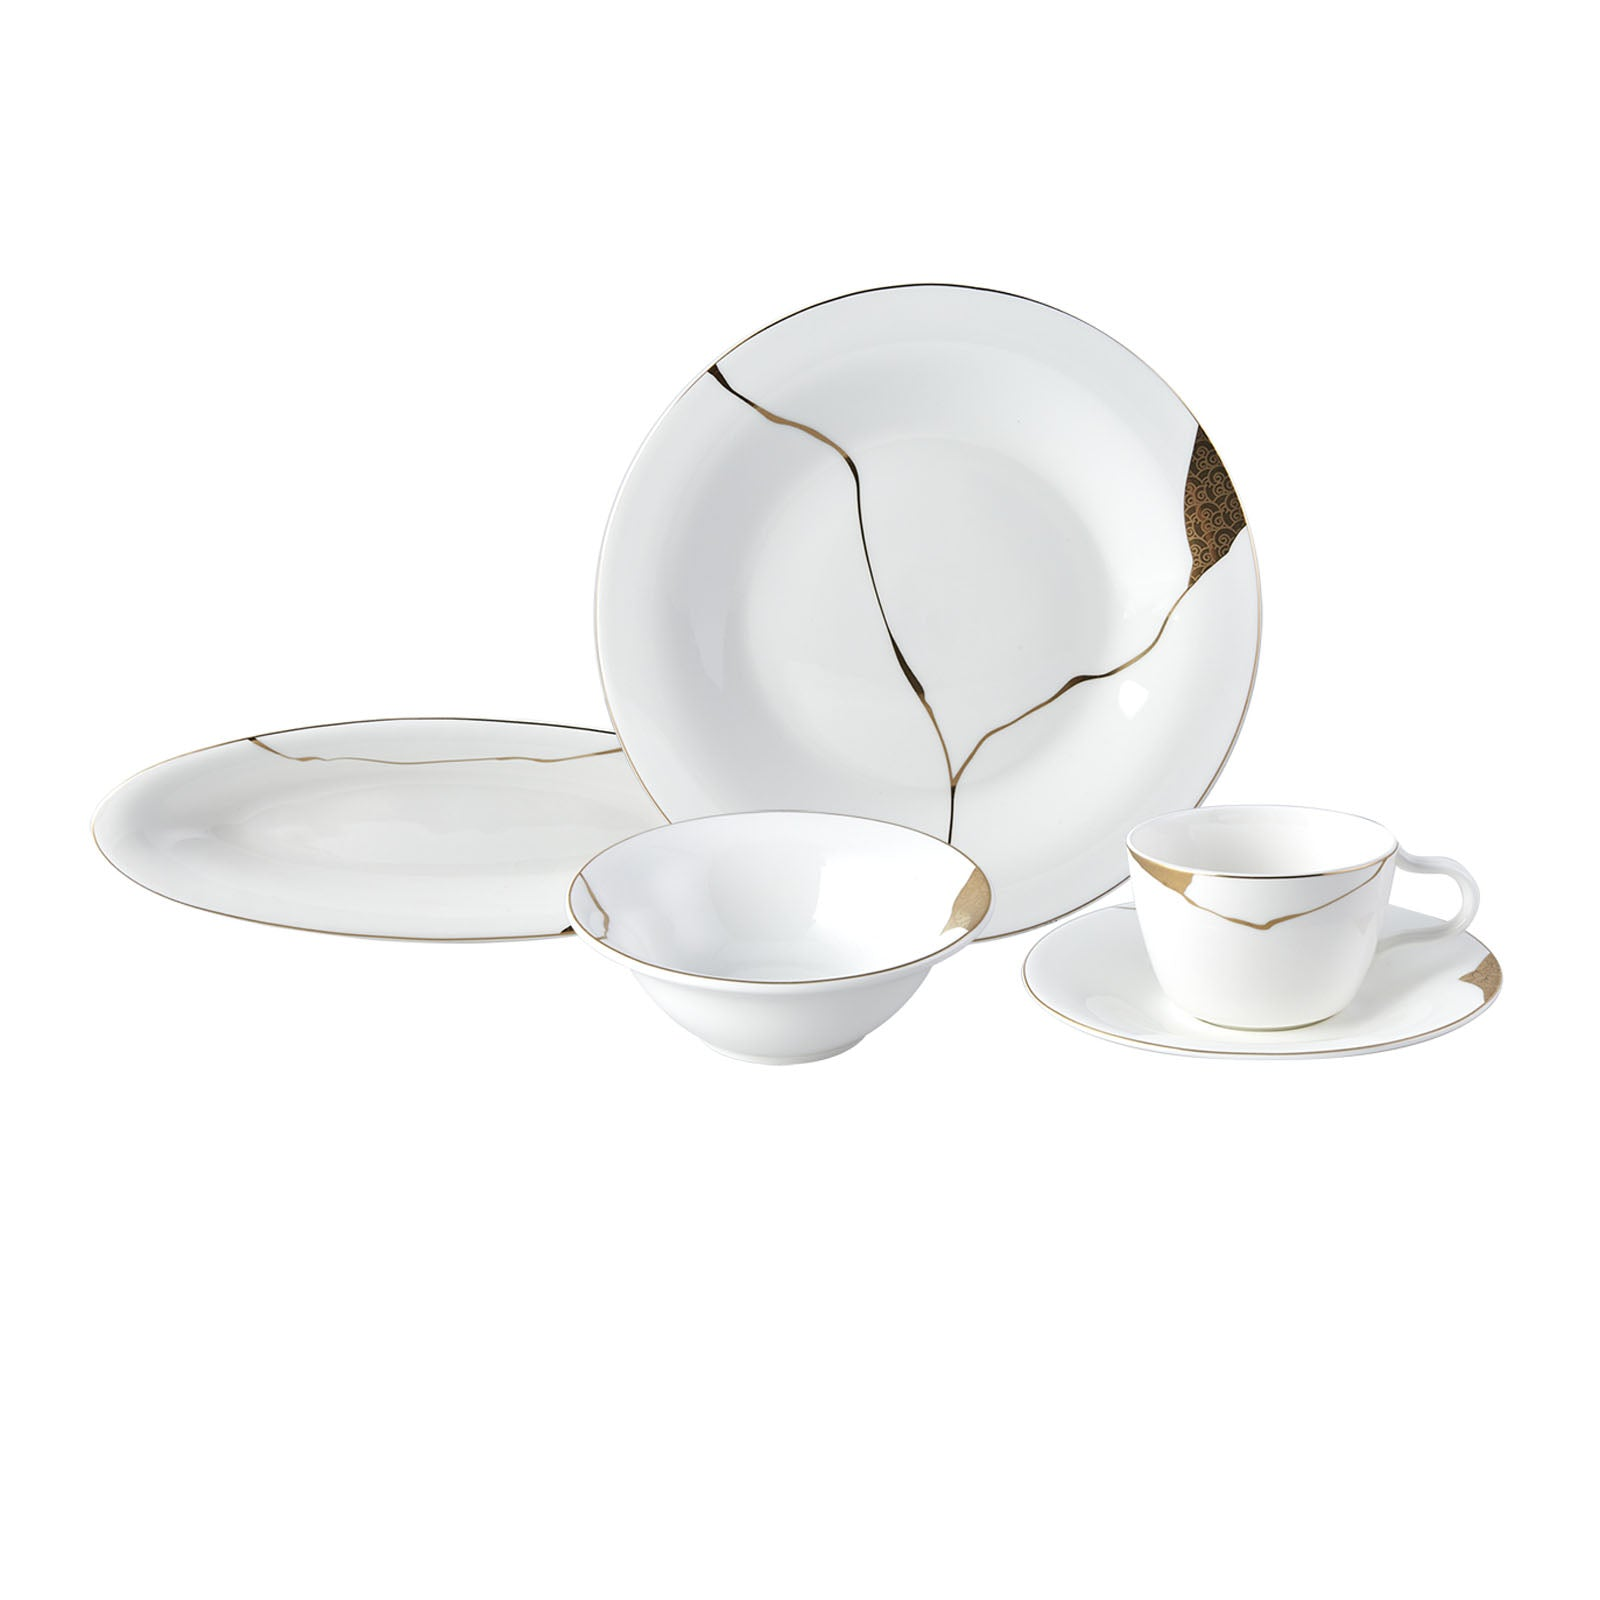 Karaca Fine Pearl Quora 26 Piece 6 Person Pearl Breakfast Set 153.03.07.8719 -  26 قطعة 6 أشخاص مجموعة إفطار اللؤلؤ من كاراجا - Shop Online Furniture and Home Decor Store in Dubai, UAE at ebarza